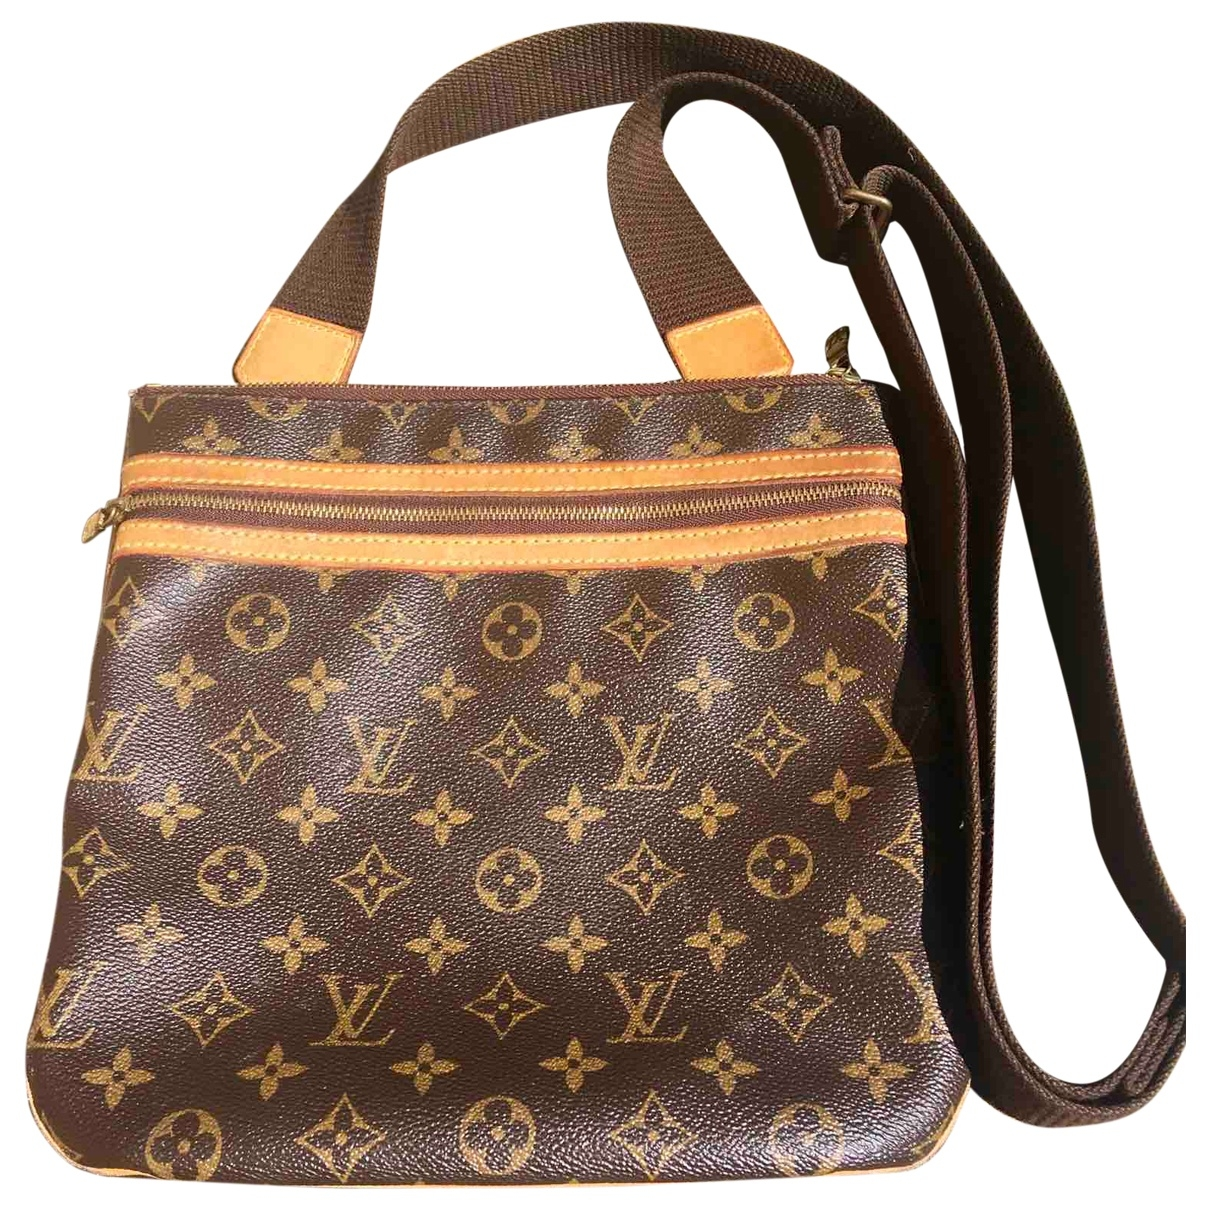 Louis Vuitton Bosphore Handtasche in  Braun Leinen